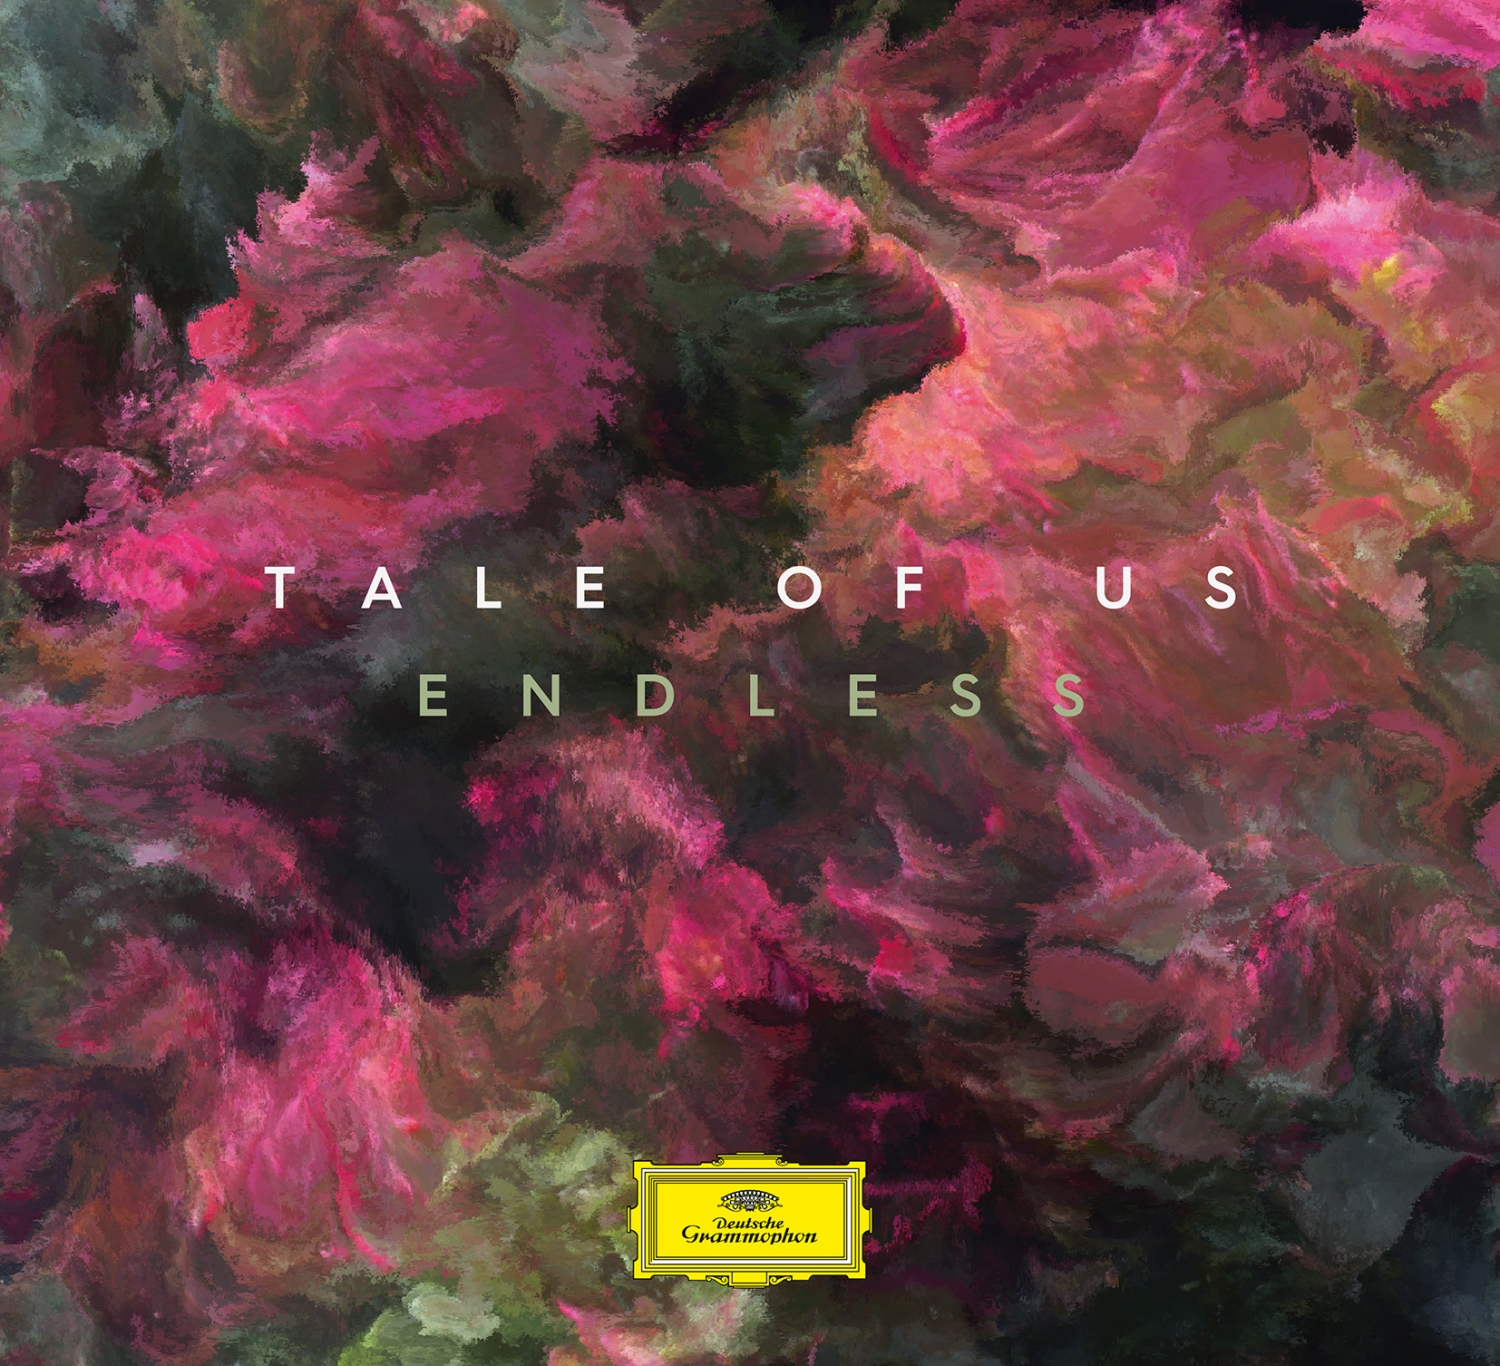 Tale Of Us - Endless (Deutsche Grammophon)